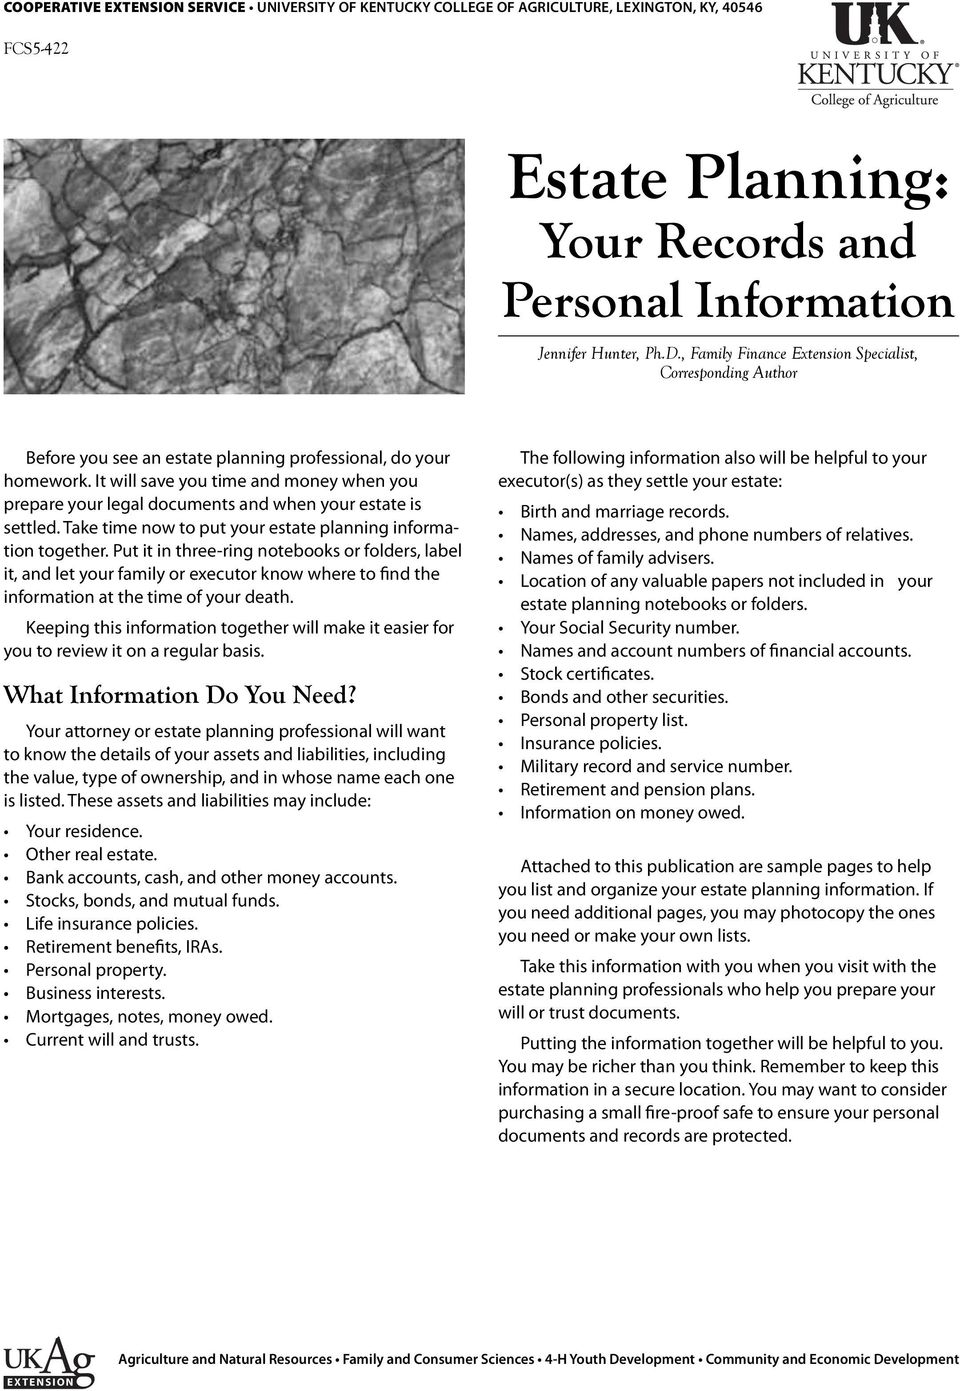 Estate Planning: Your Records and Personal Information  What